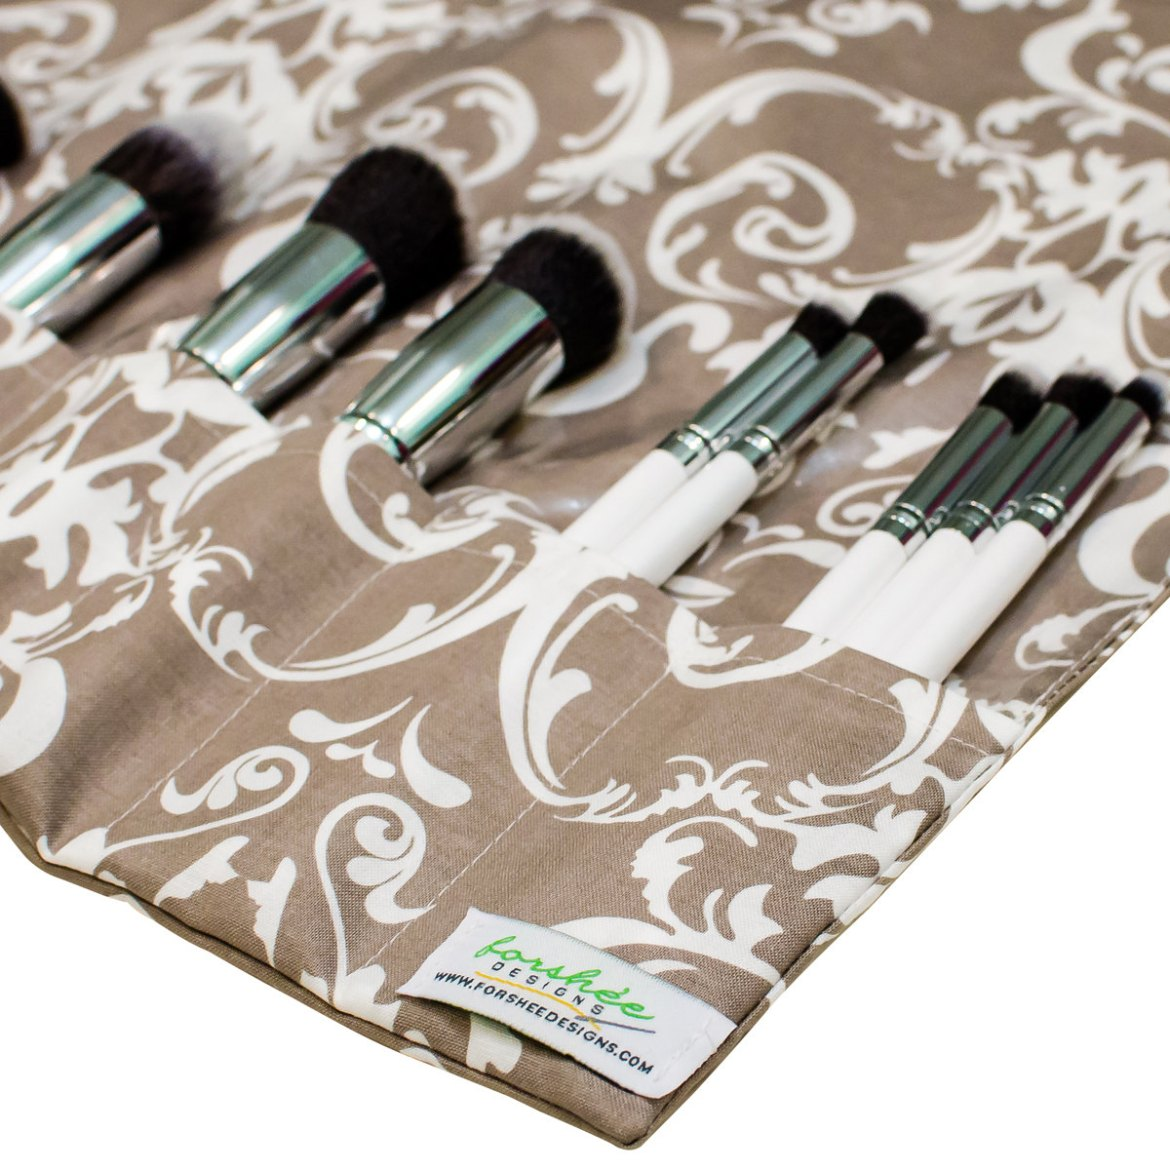 brush roll | gifts bridesmaids travel | http://emmalinebride.com/gifts/gifts-bridesmaids-travel